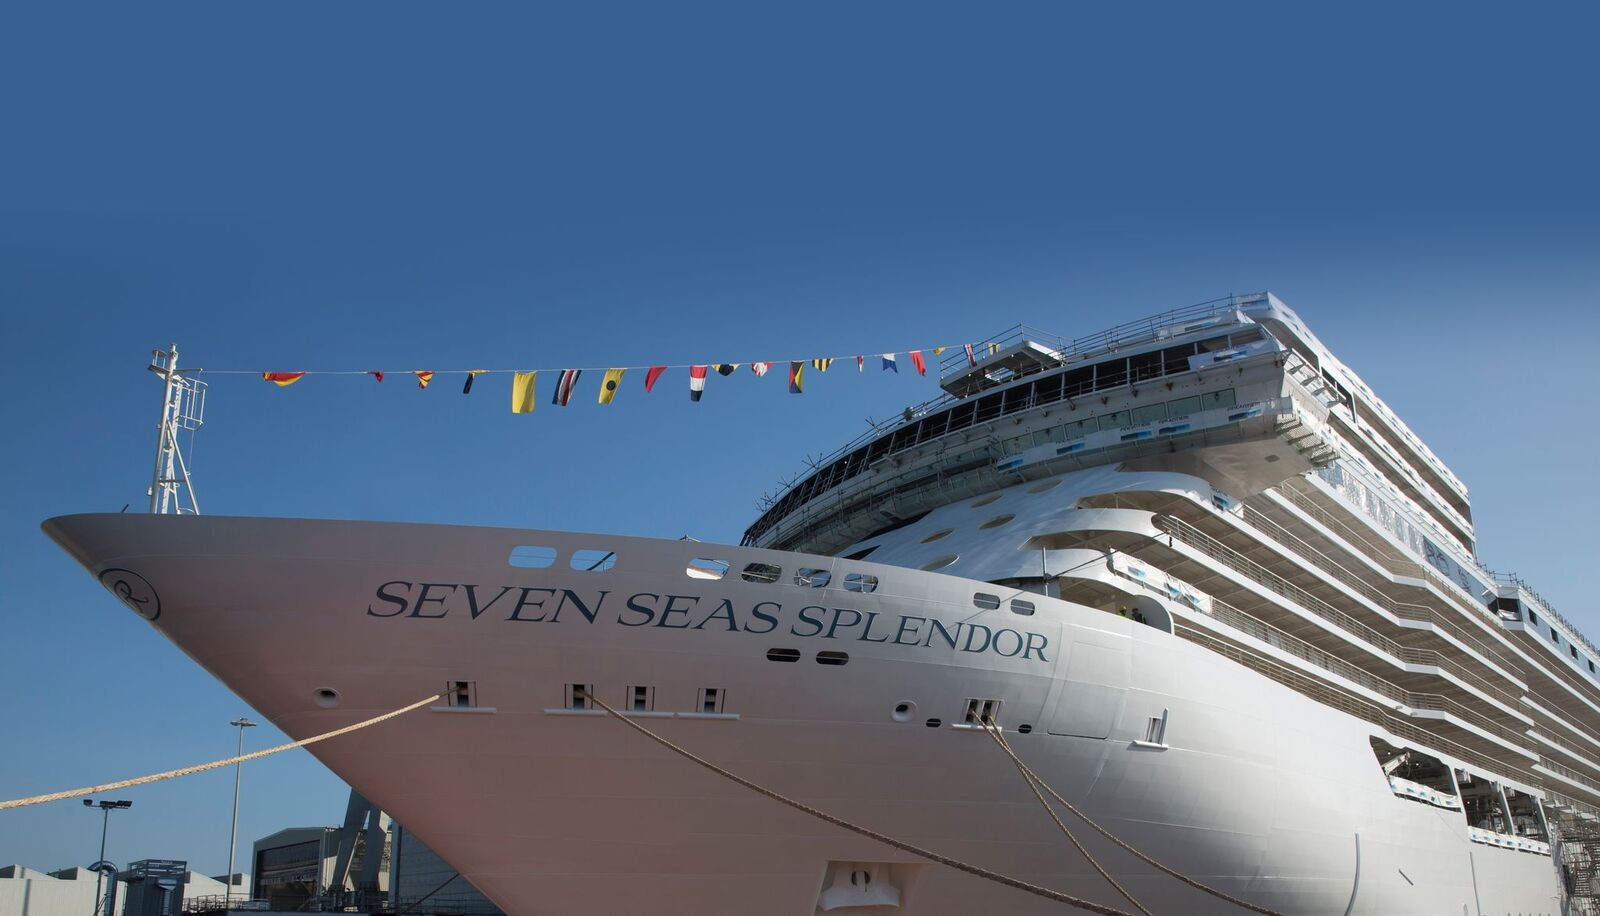 https://highend-traveller.com/regent-seven-seas-cruises-takes-delivery-of-the-ship-that-perfects-luxury-seven-seas-splendor/